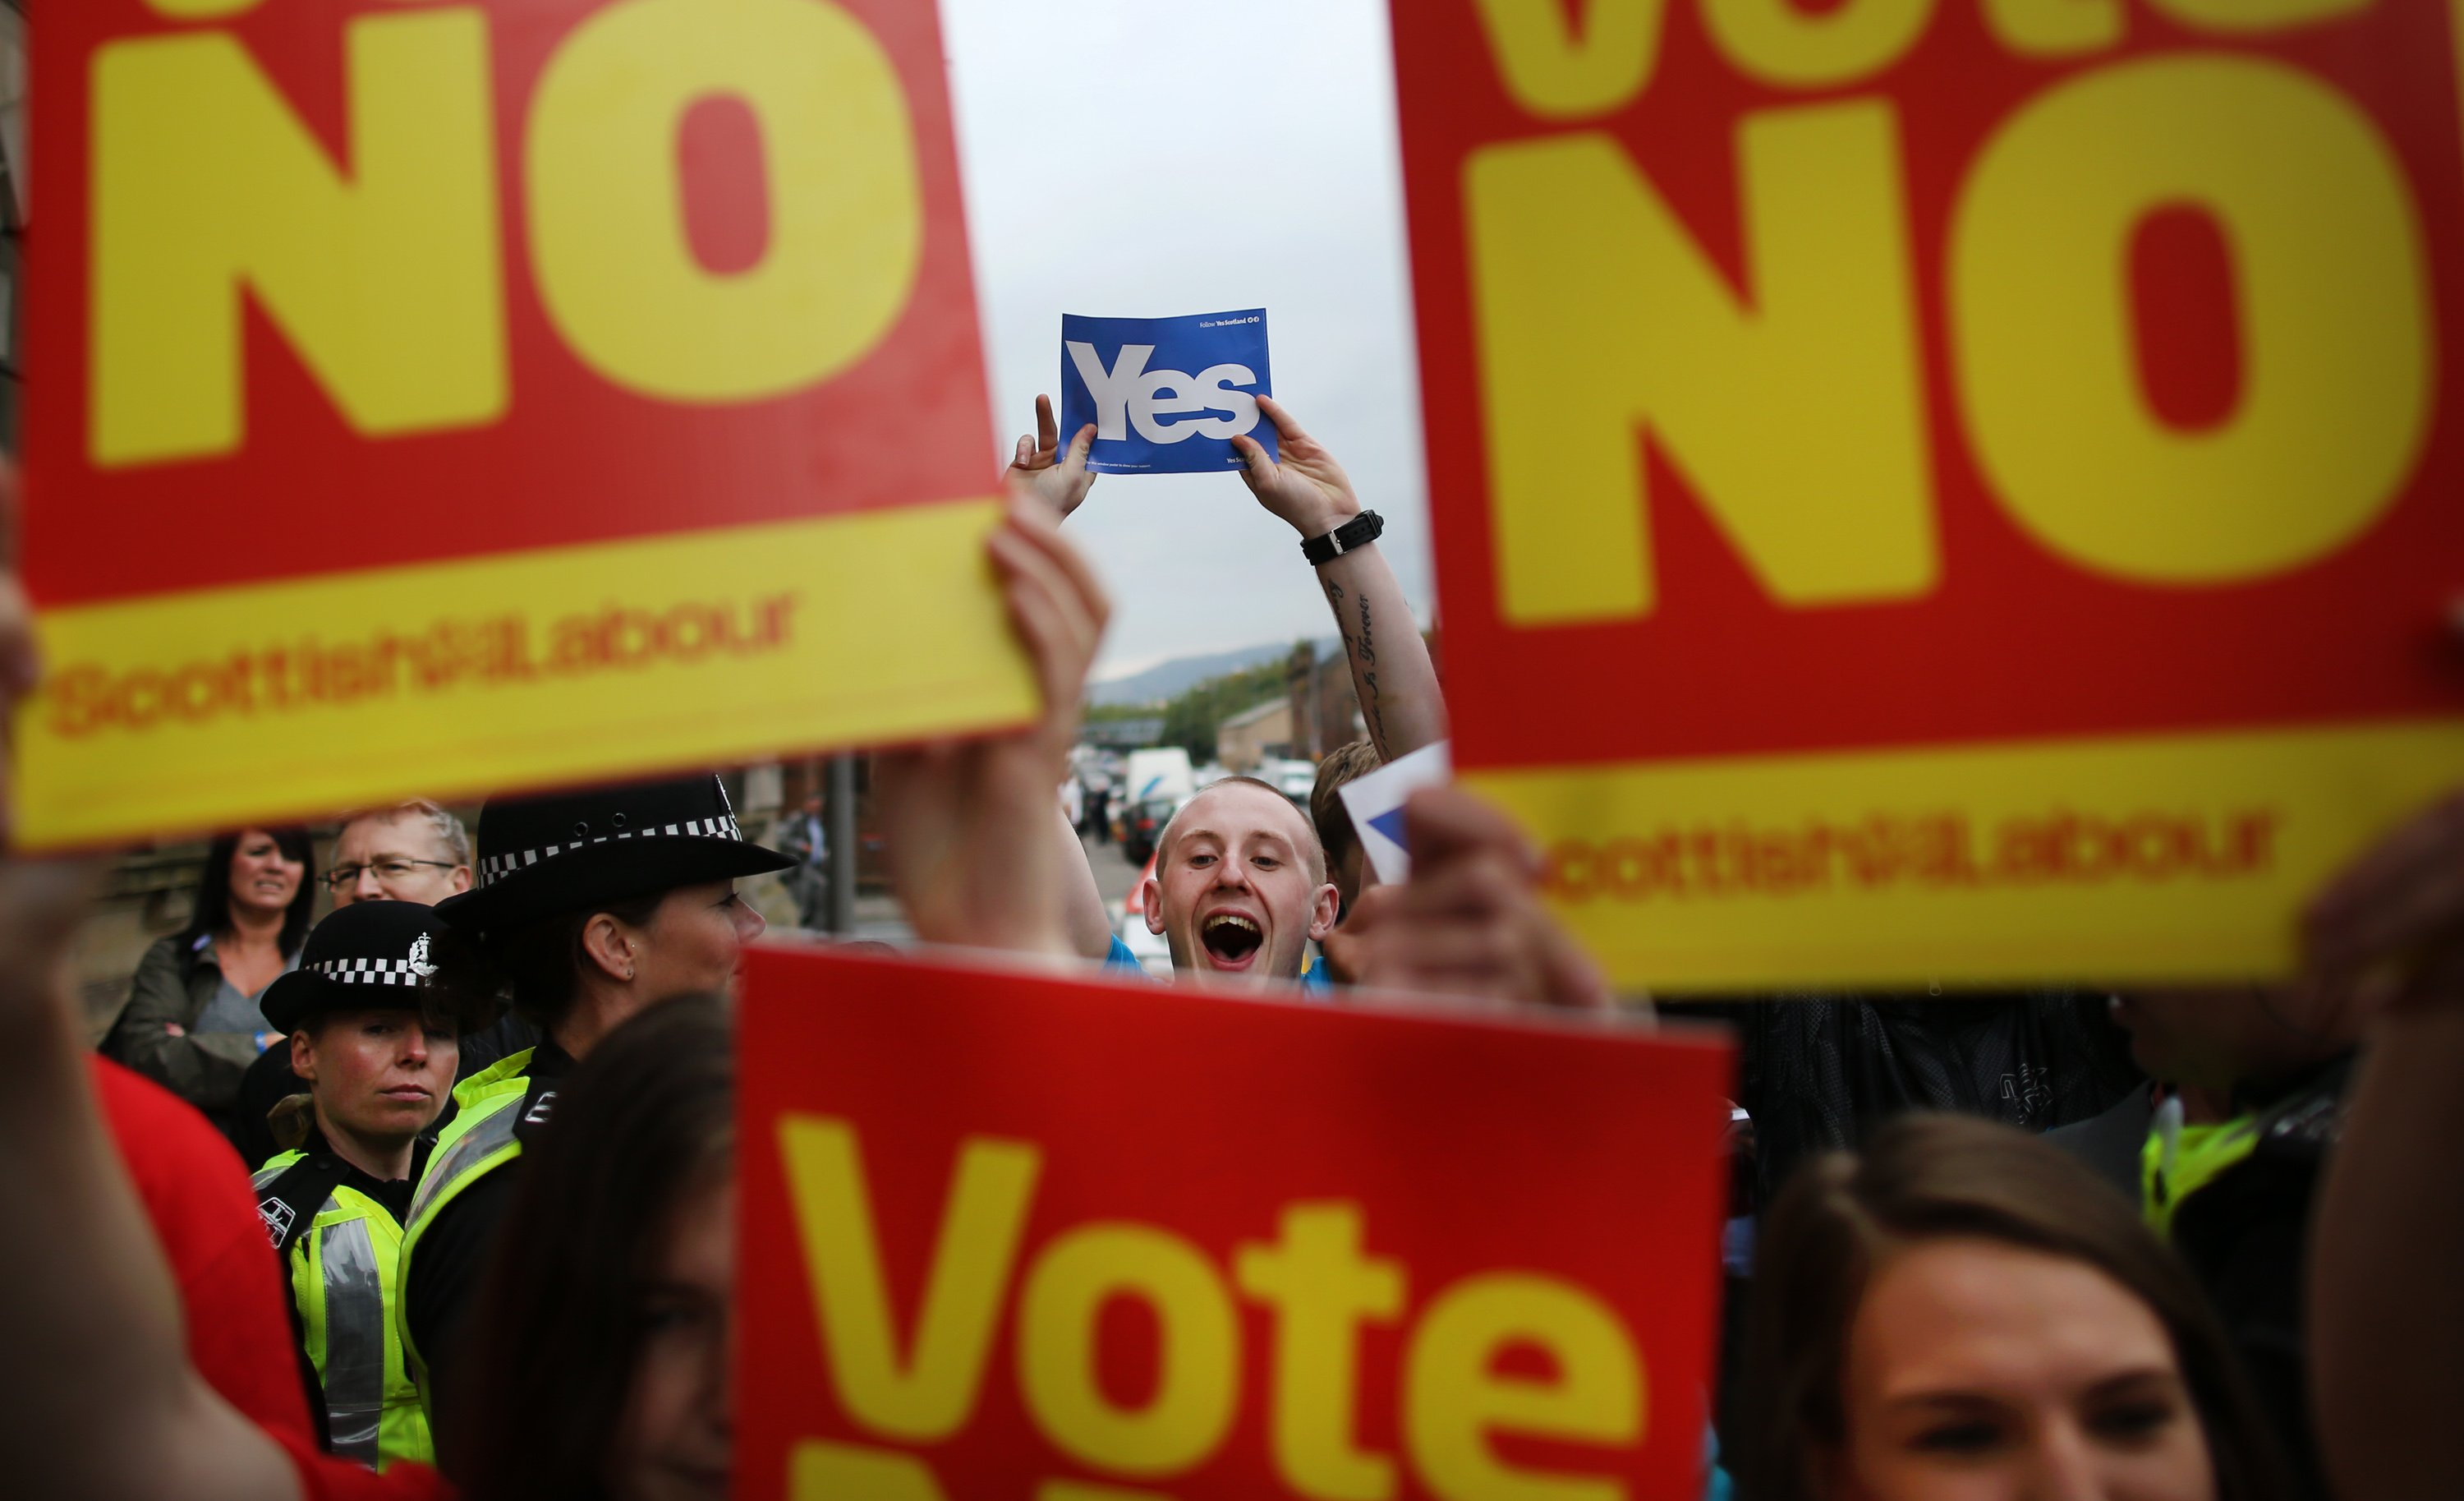 Yes campaigners stand near No supporters at Dumbarton Town Hall as former Prime Minister Gordon Brown leaves after attending a rally on Sept. 16, 2014 in Glasgow, Scotland.